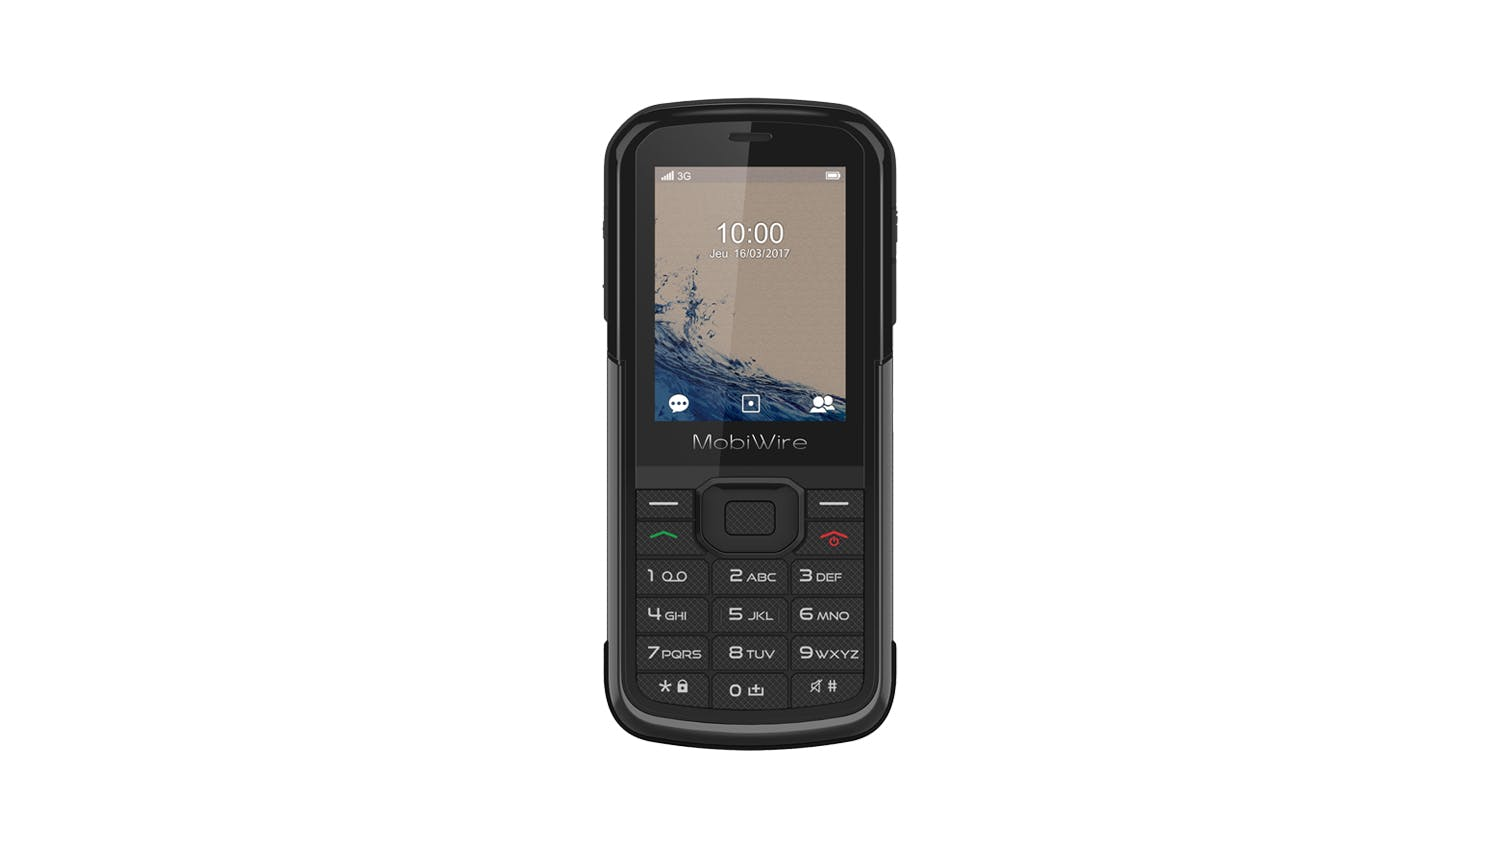 2degrees mobiwire hakan rugged mobile phone harvey norman new zealand. Black Bedroom Furniture Sets. Home Design Ideas